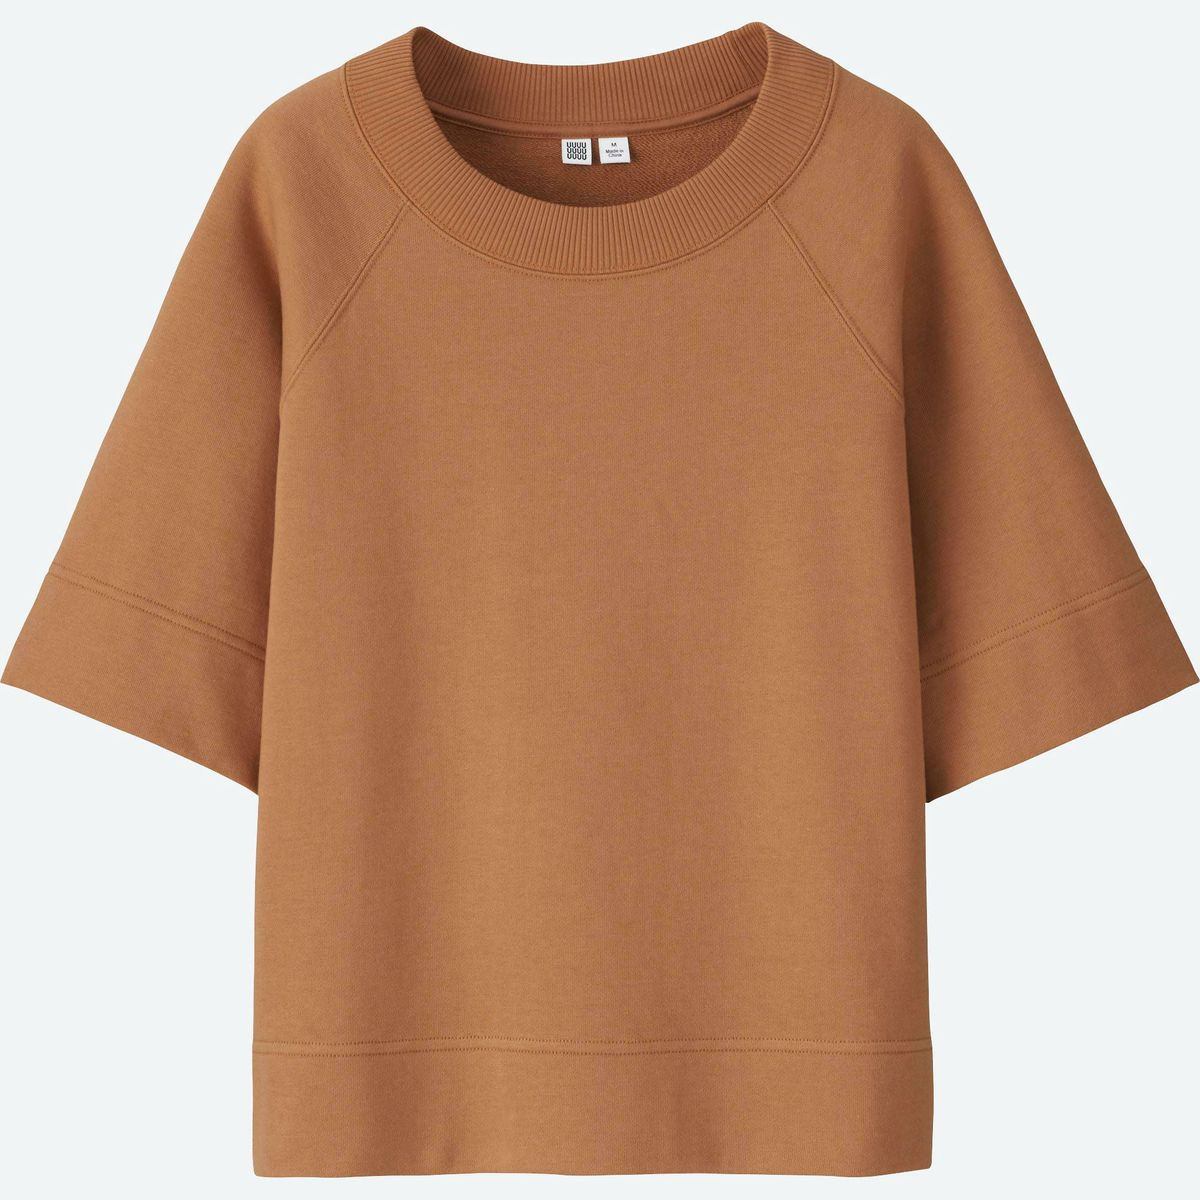 f8cb4d6ad The New Uniqlo U Collection Is Honestly Great - Racked